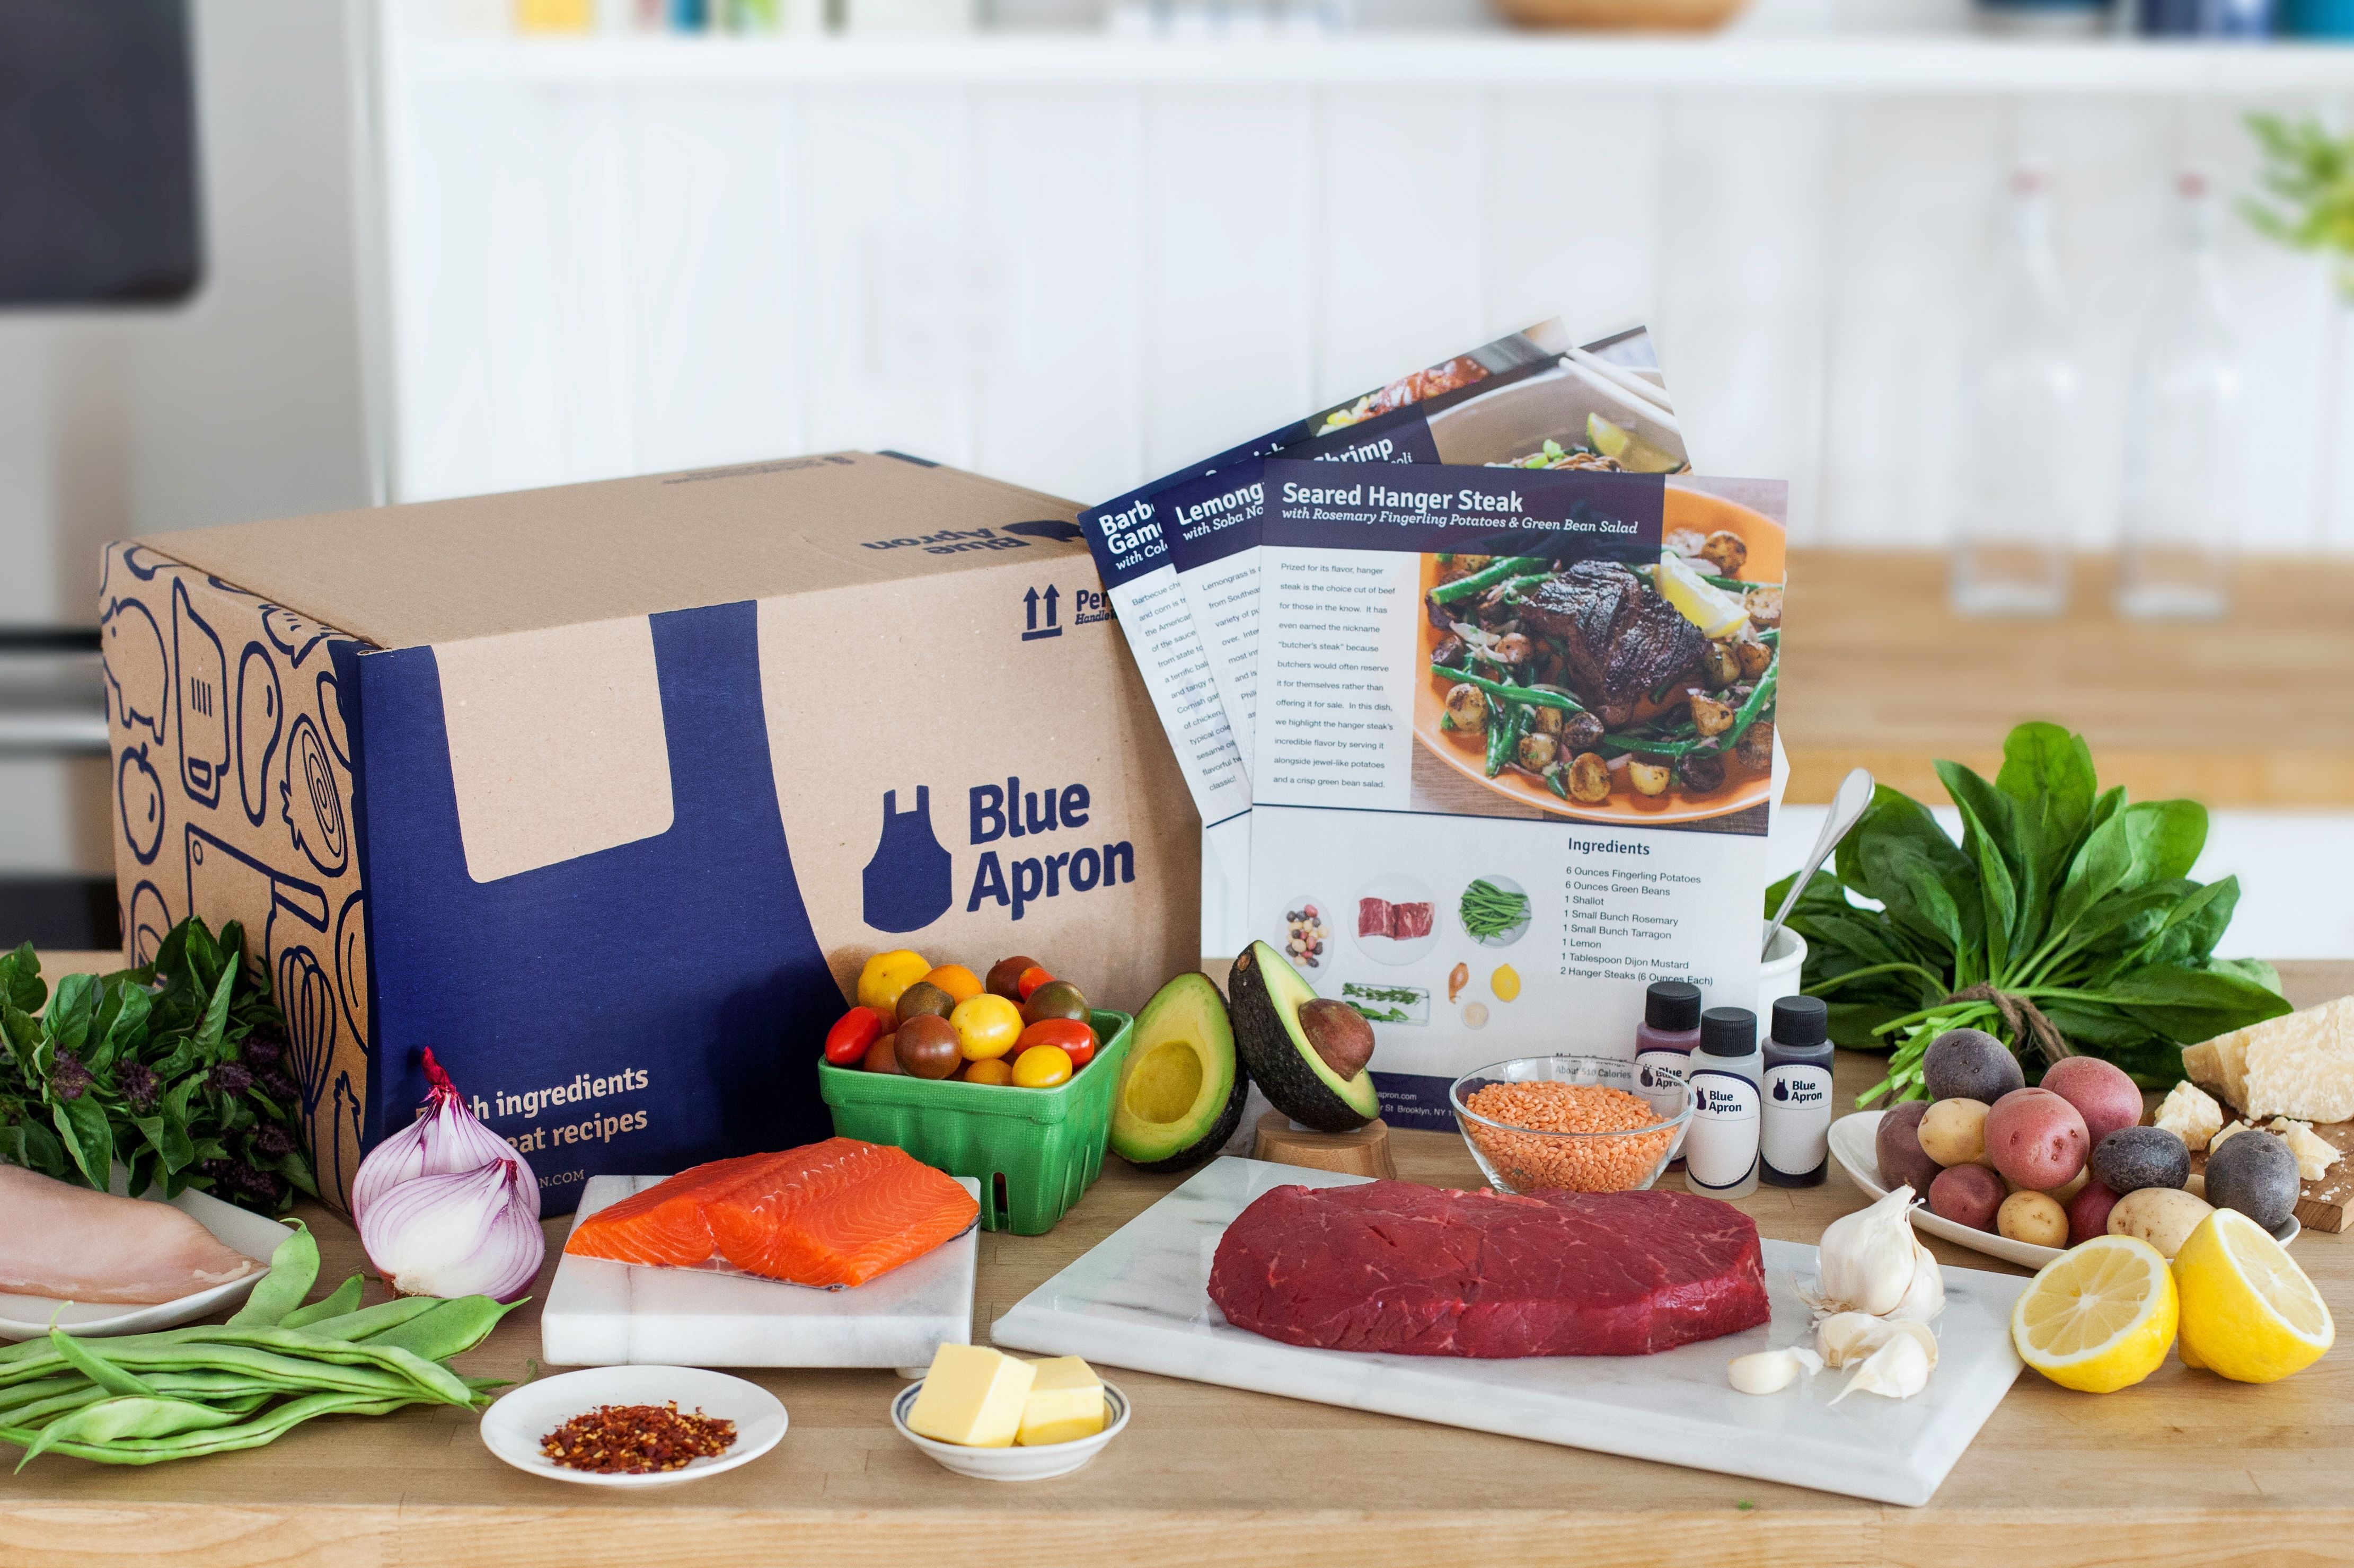 Blue apron offer - My Review Of Blue Apron An Offer For 2 Free Meals